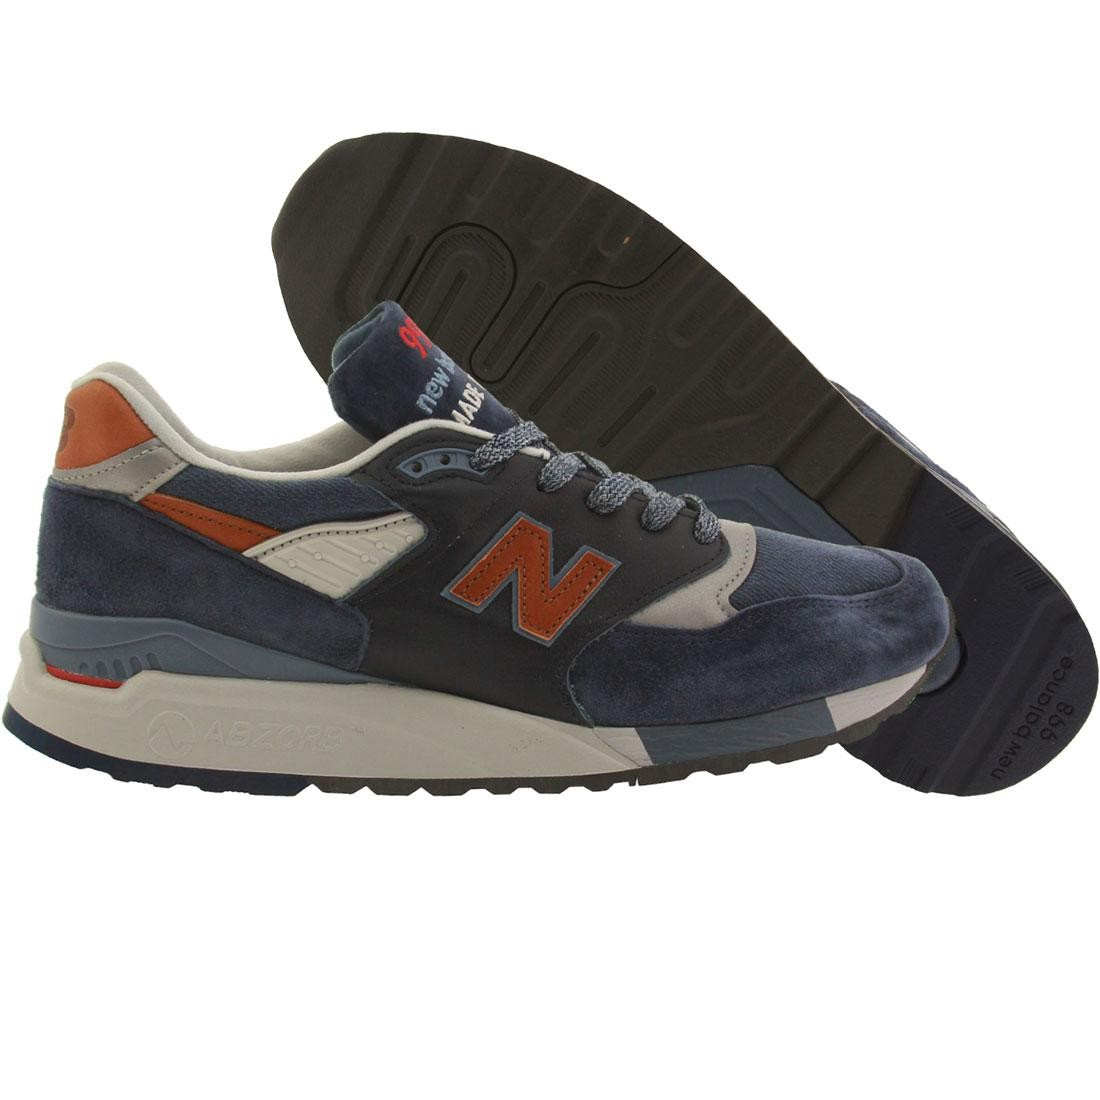 ef2d7e52e3919 New Balance Men 998 Distinct Retro Ski M998DSNG Made in USA navy blue aster  carmel